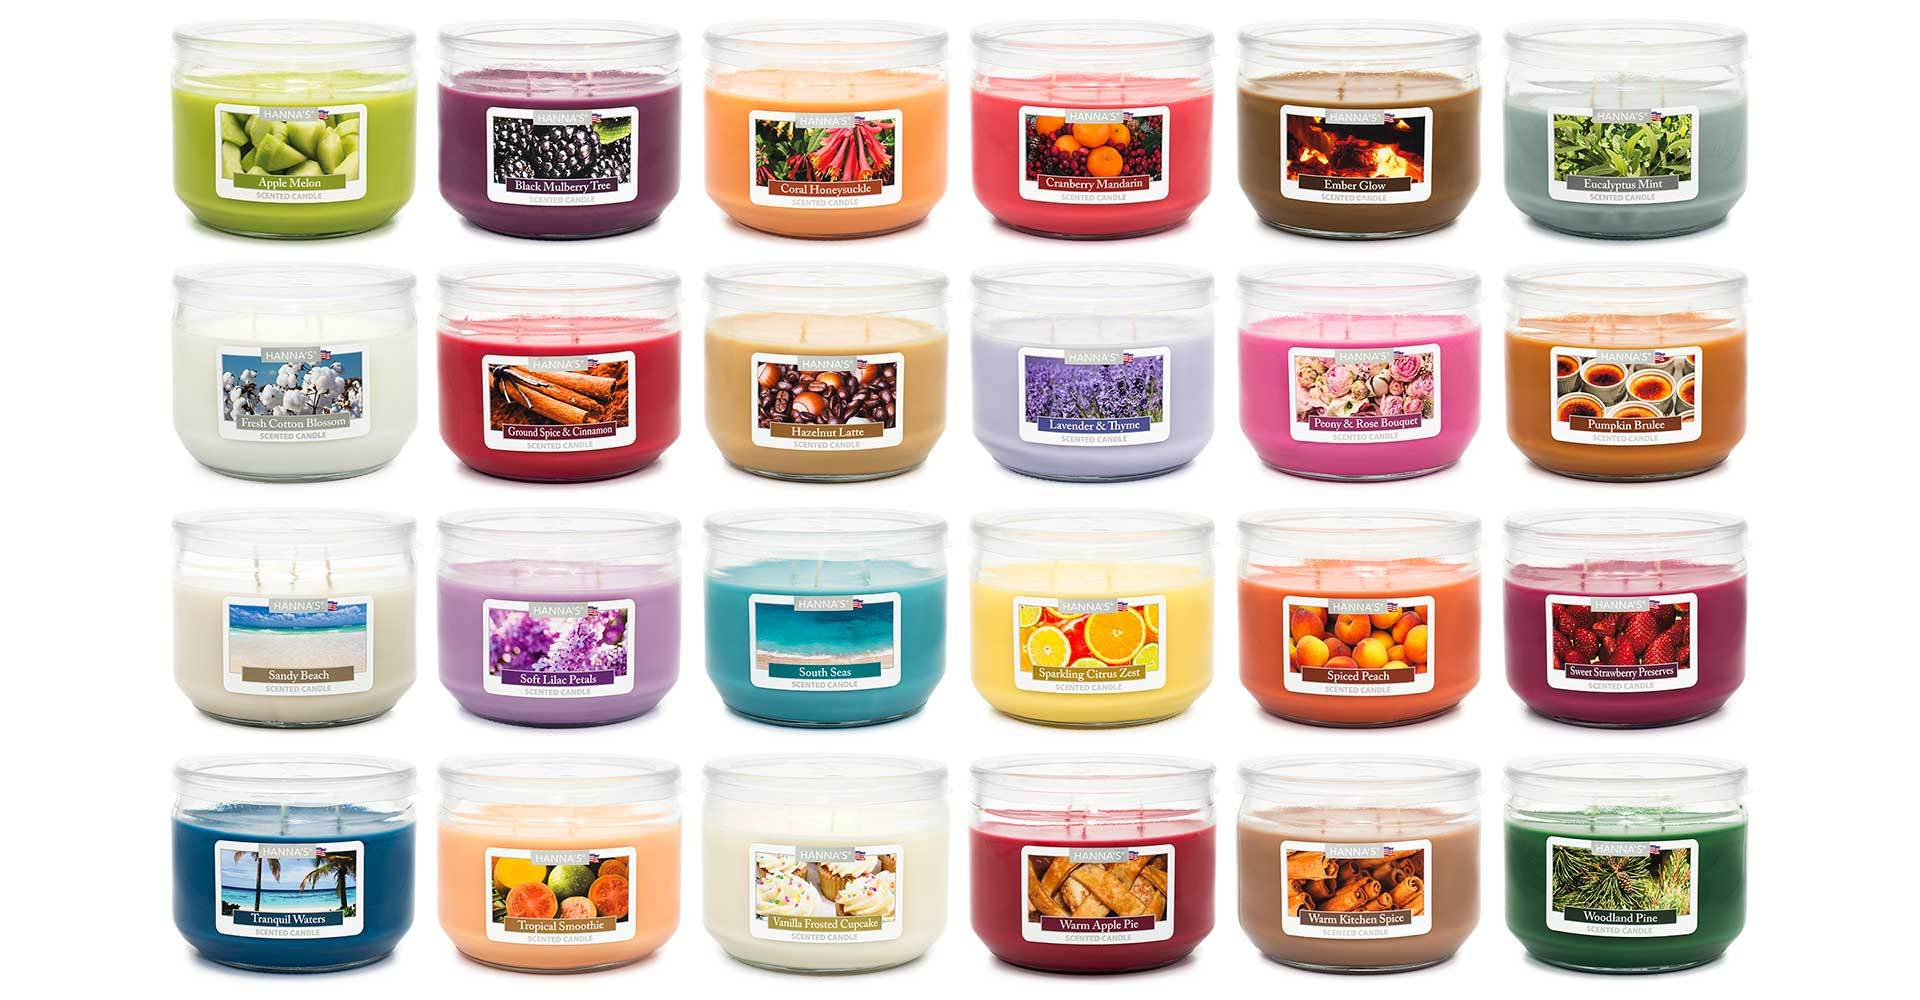 Soft Lilac Petals Scented 3 wick Candle - Candlemart.com